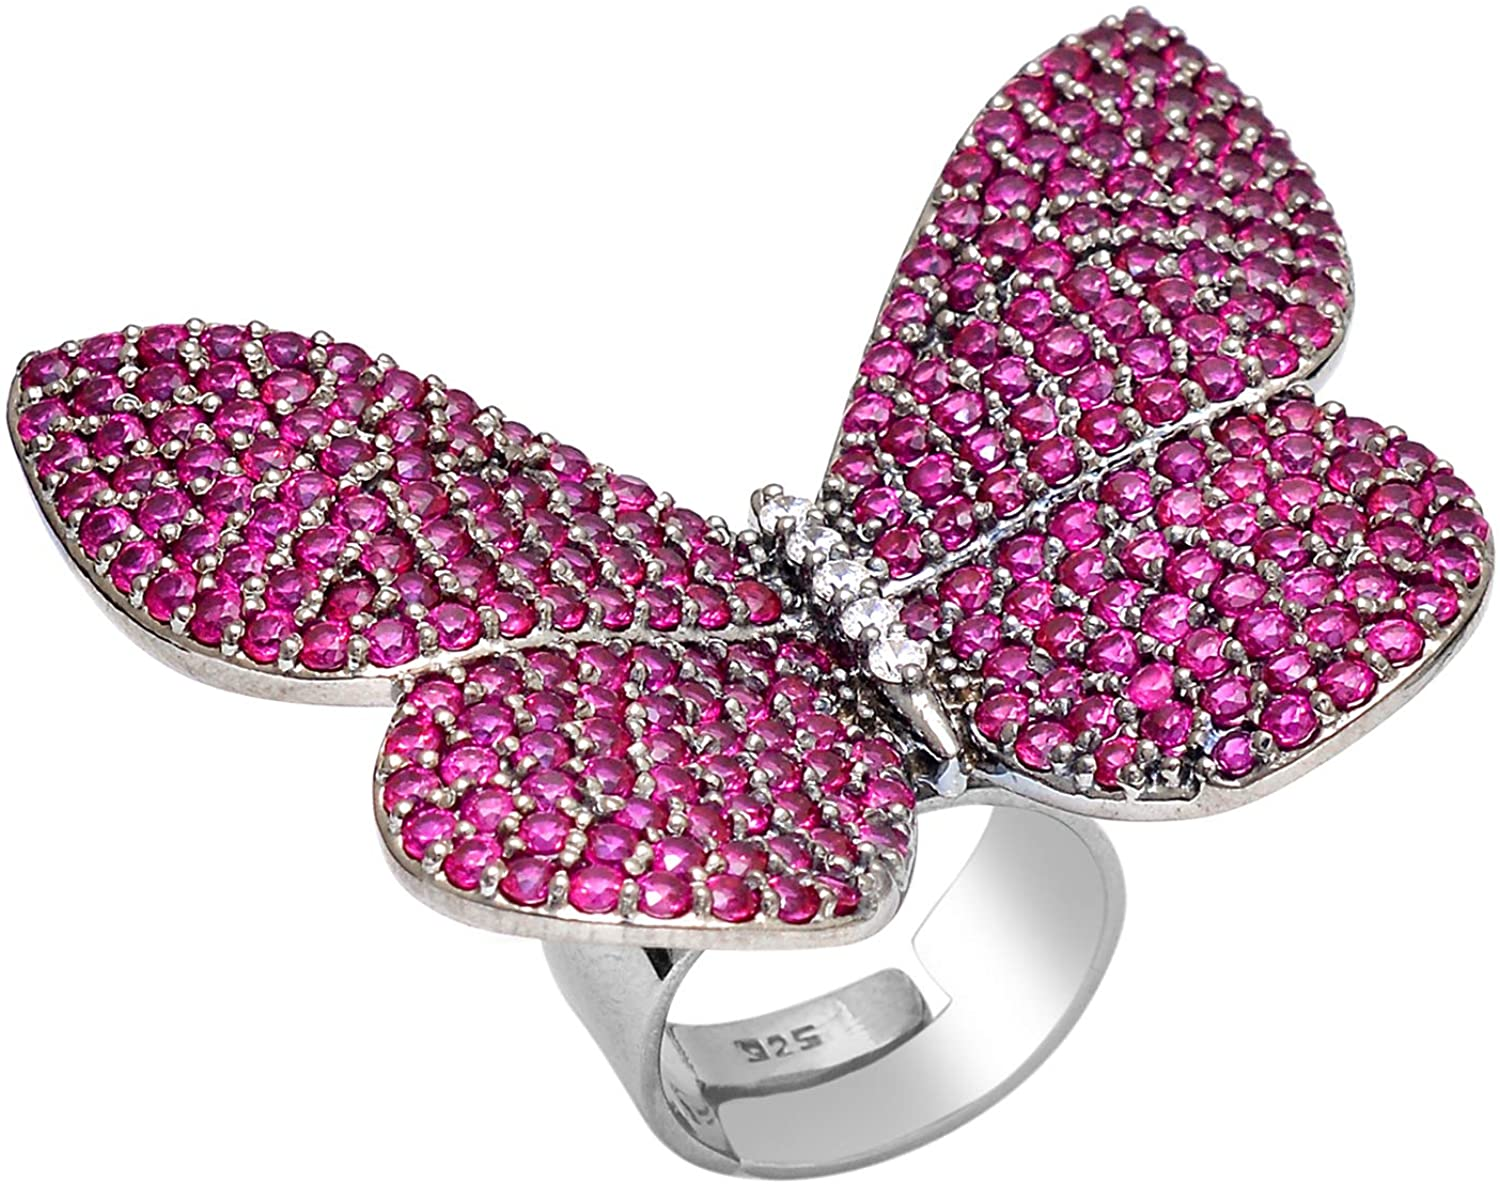 COLORS OF JEWELS 925 Sterling Silver Beautiful Cubic Zircon Adjustable Butterfly Ring Jewelry